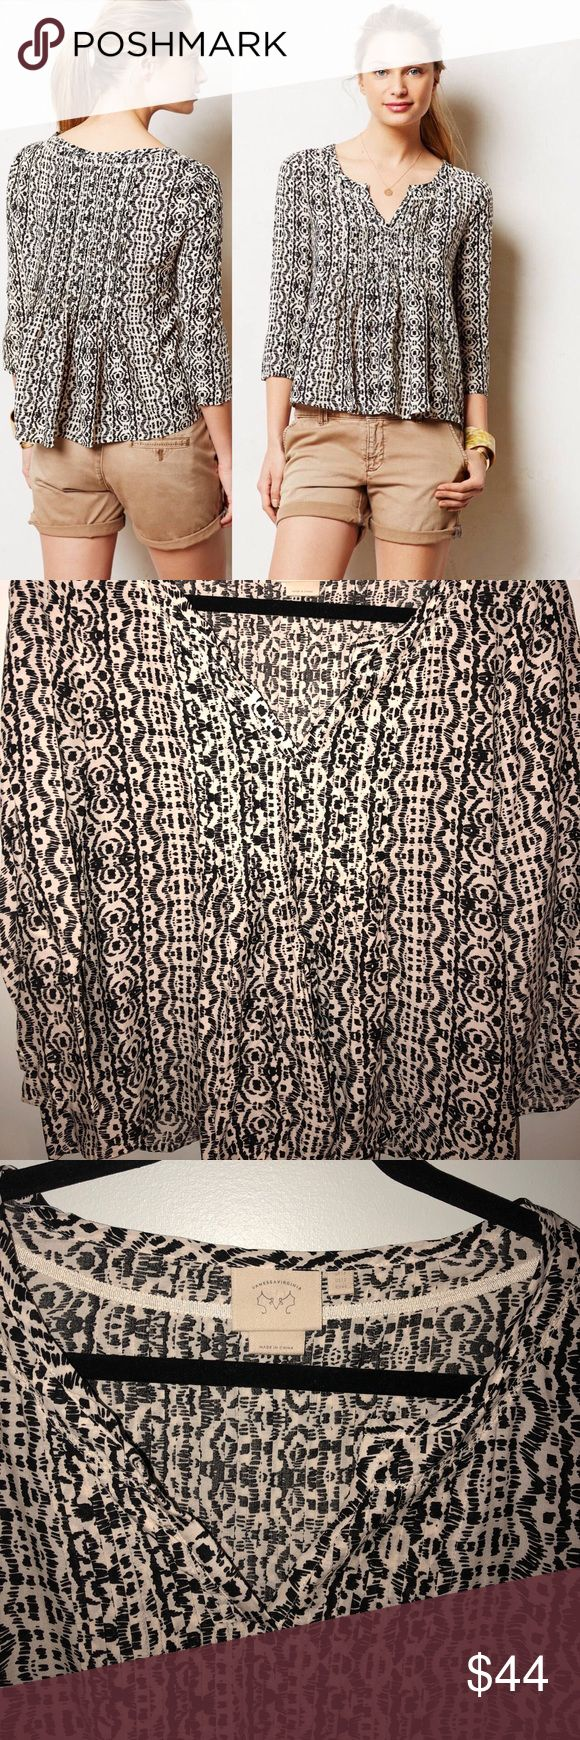 """Anthropologie Vanessa Virginia Mahdia Peasant Top Black and off white peasant blouse. Only been worn a few times and in excellent condition!  100% Rayon  Pit to pit: 21.5"""" Length: 23"""" Anthropologie Tops Blouses"""